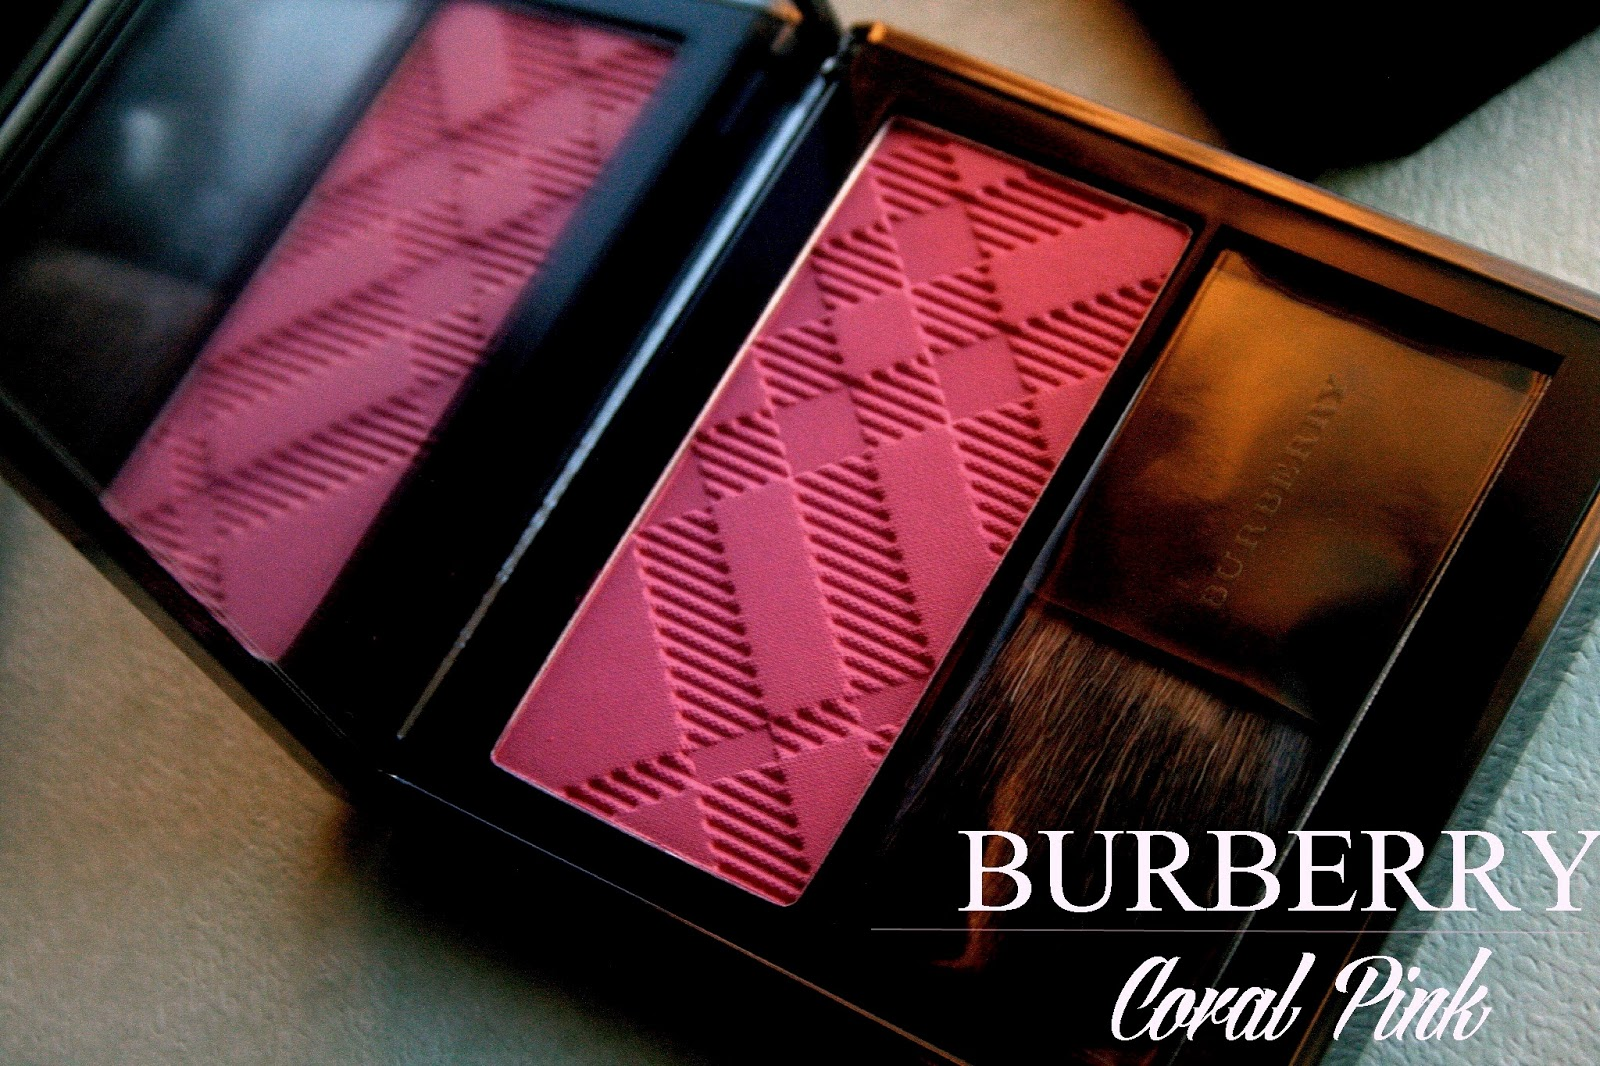 BurberryLight Glow Natural Blush in Coral Pink Burberry Spring/Summer 2013 Makeup